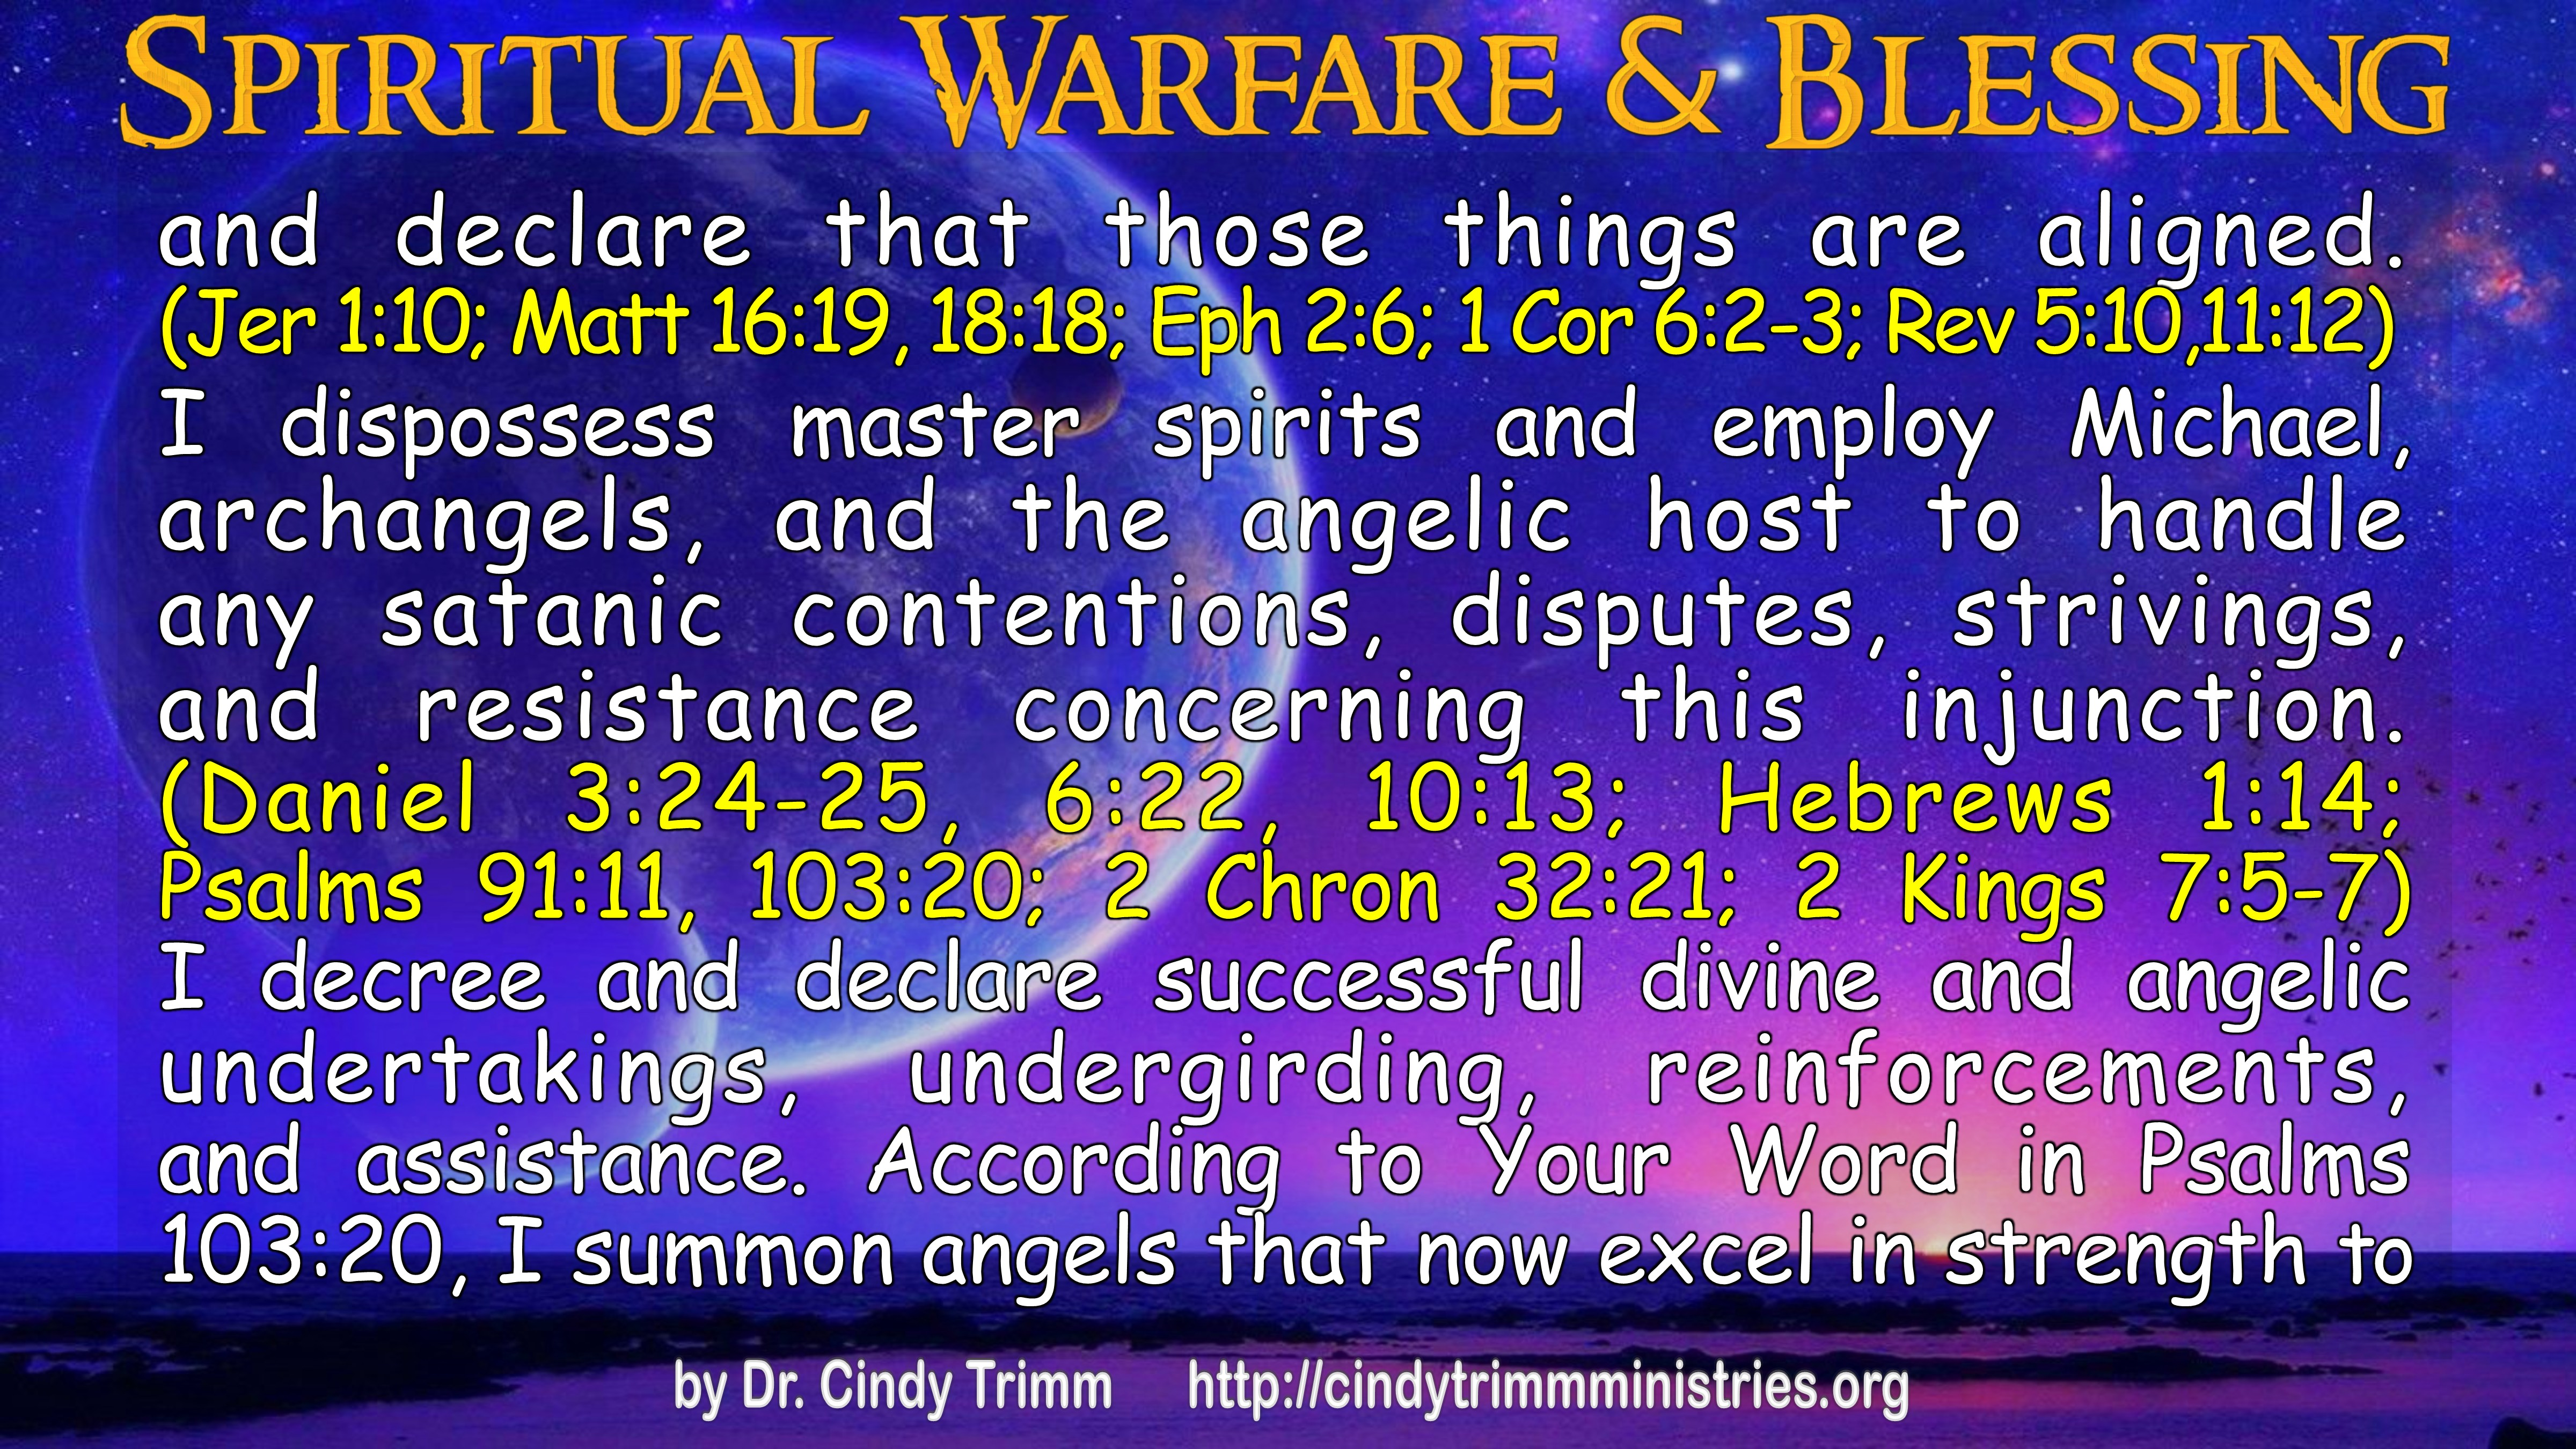 Pictures/Text: Spiritual Warfare & Blessing, Dr  Cindy Trimm